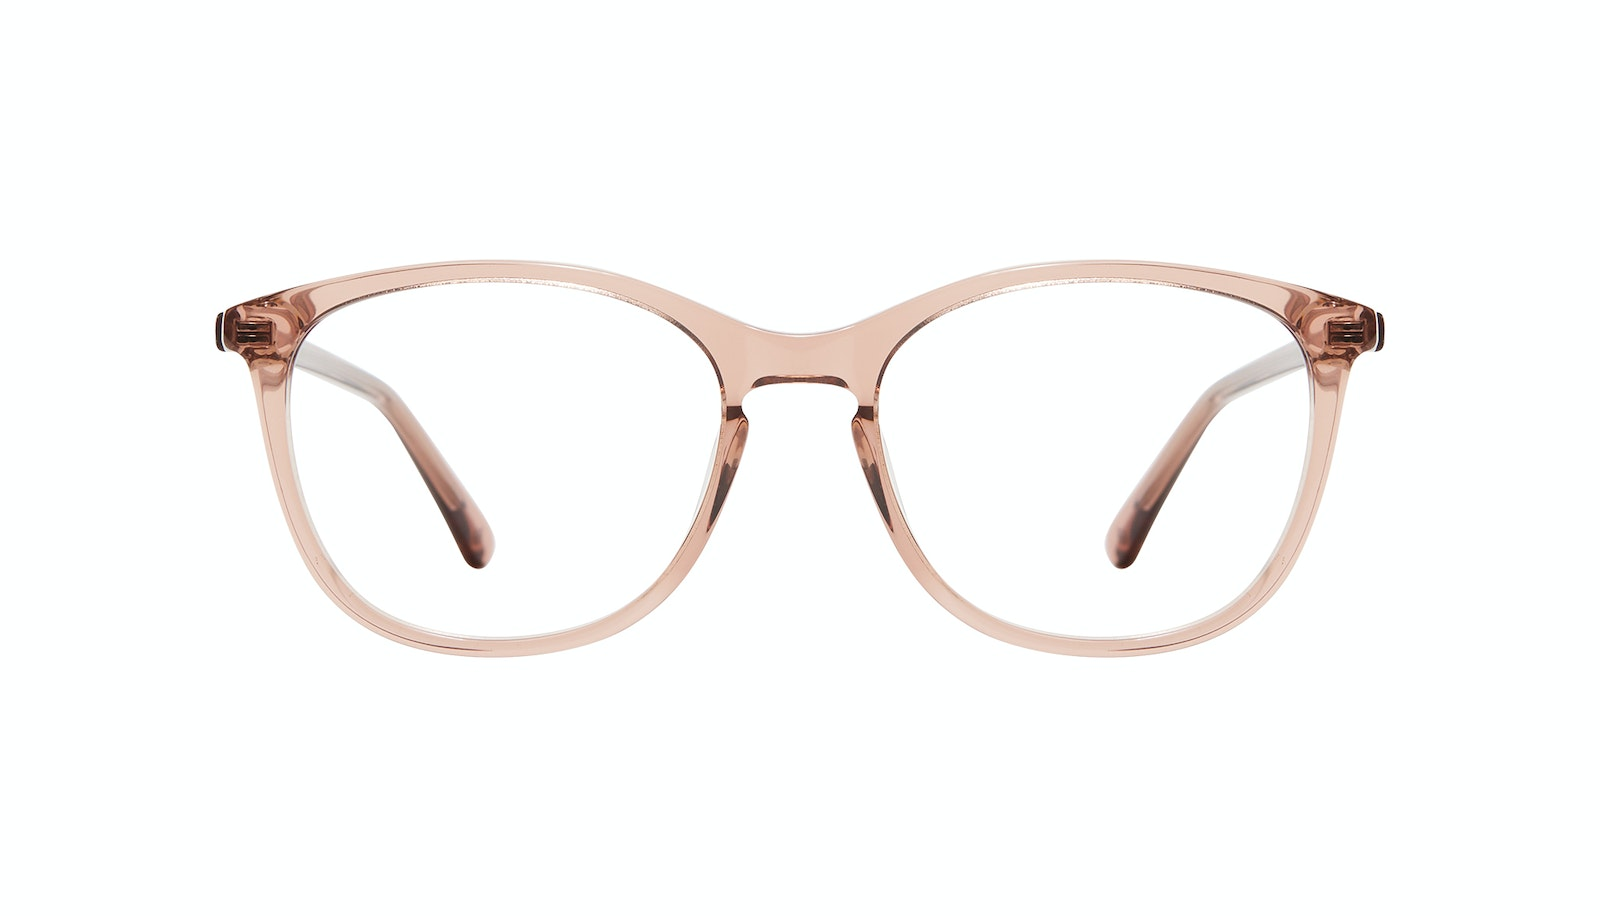 Affordable Fashion Glasses Rectangle Square Round Eyeglasses Women Nadine S Rose